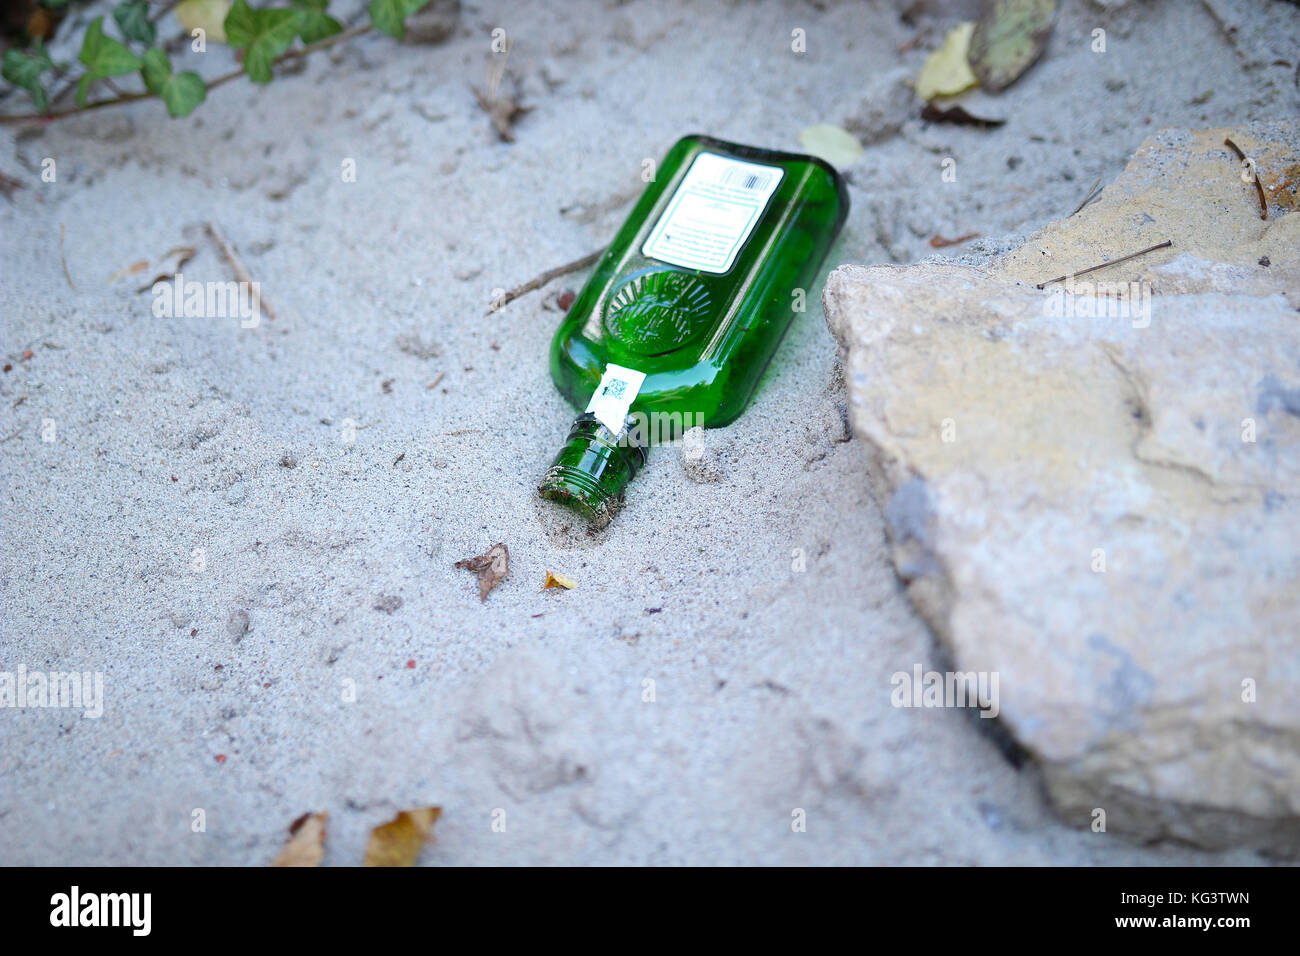 Dirty beach. Alcohol bottle on the beach sand. Sea pollution. - Stock Image